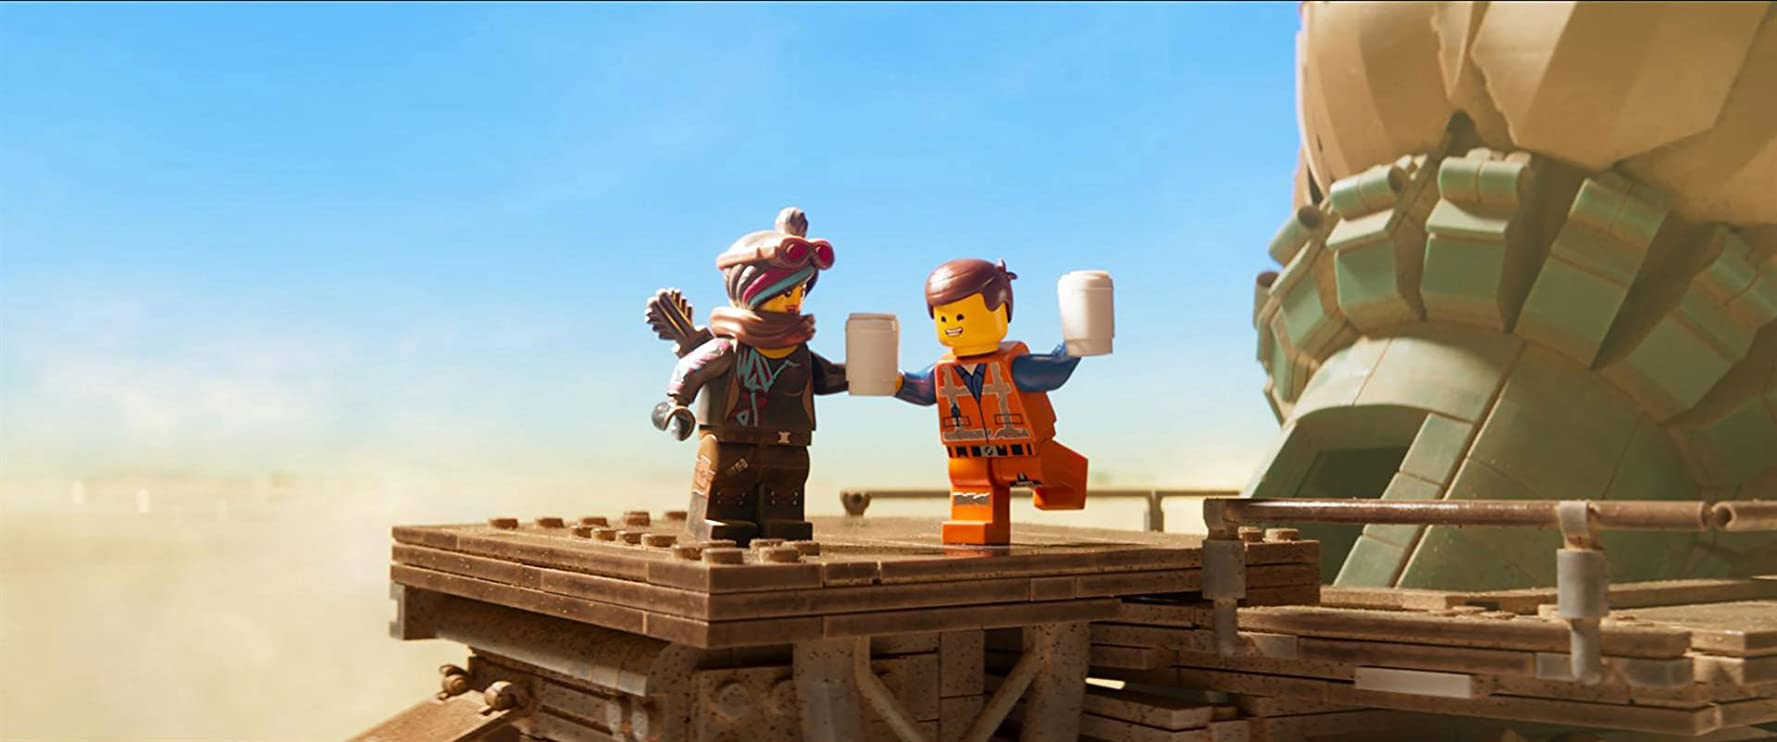 In de Engelse versie van The Lego Movie 2 trailer 2 hoor je de stem van Chris Pratt dubbel